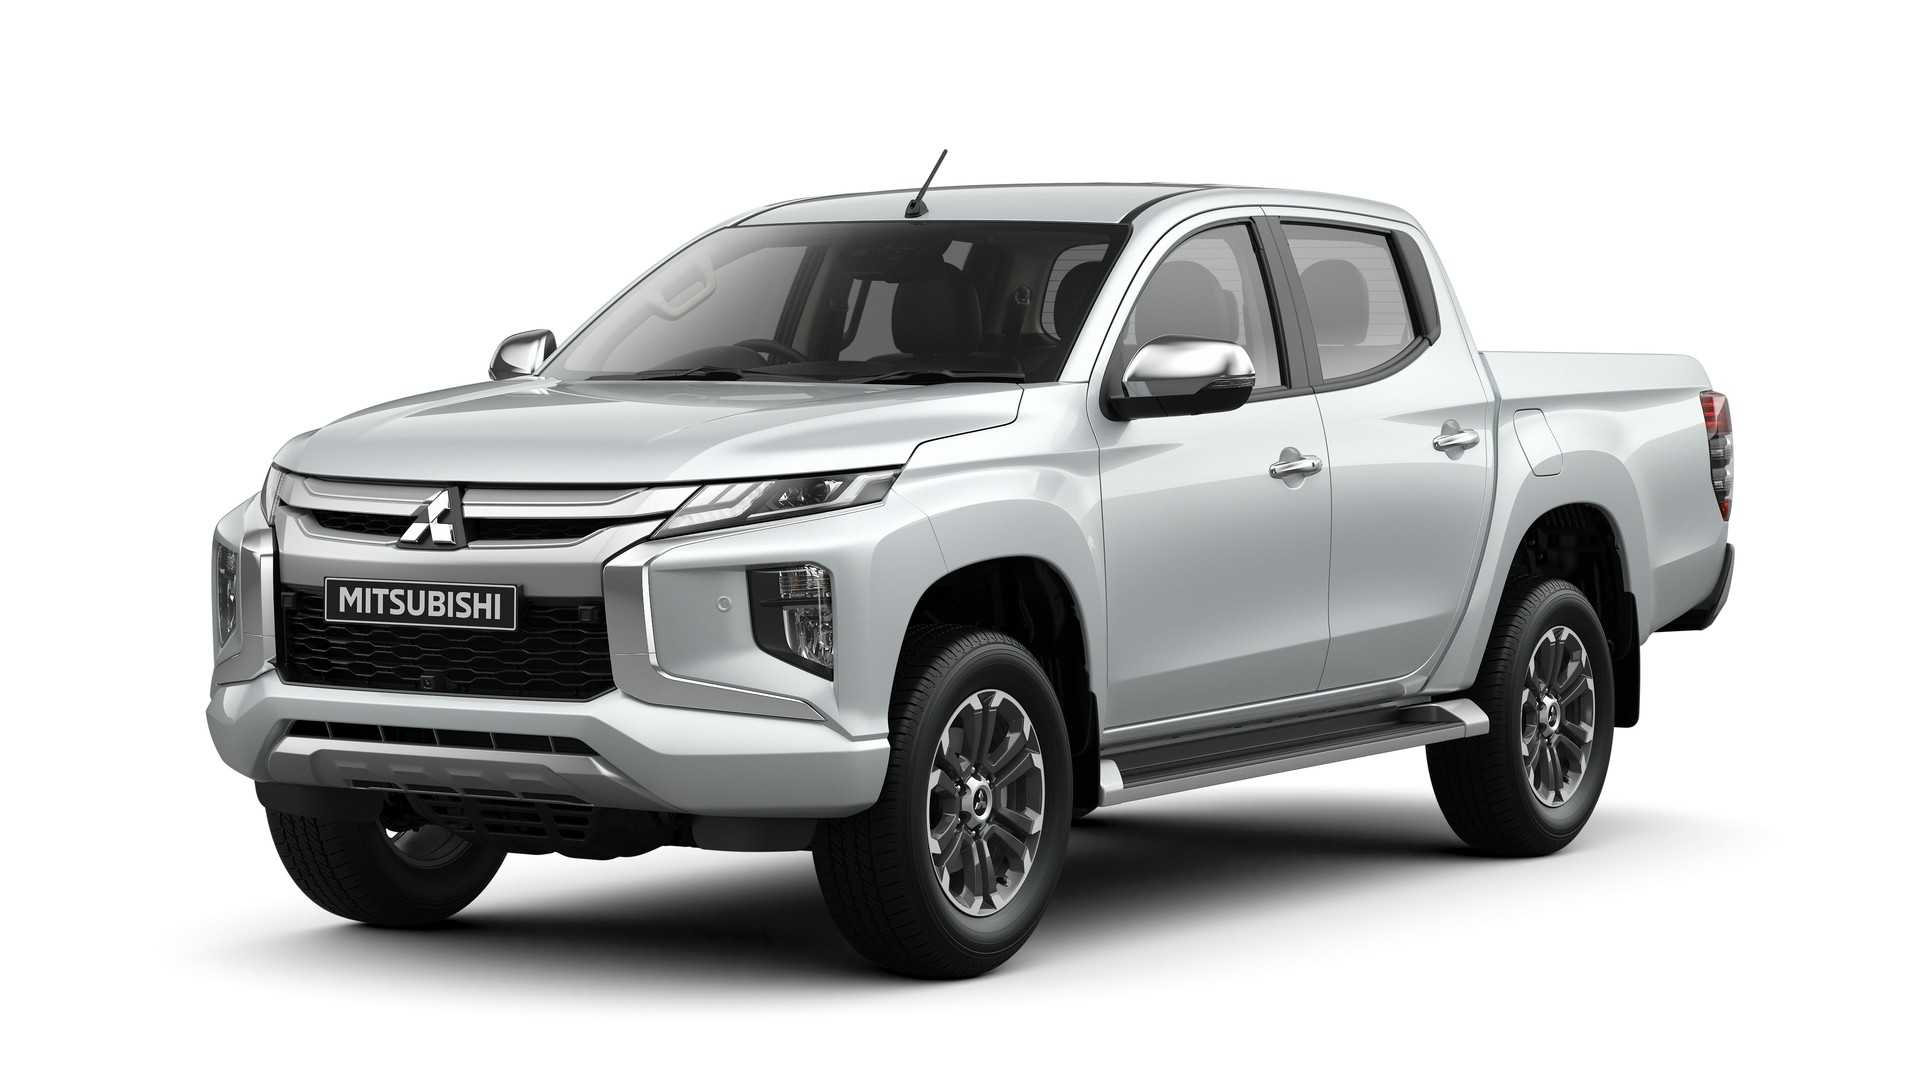 56 Best Review Mitsubishi Sportero 2019 Redesign with Mitsubishi Sportero 2019